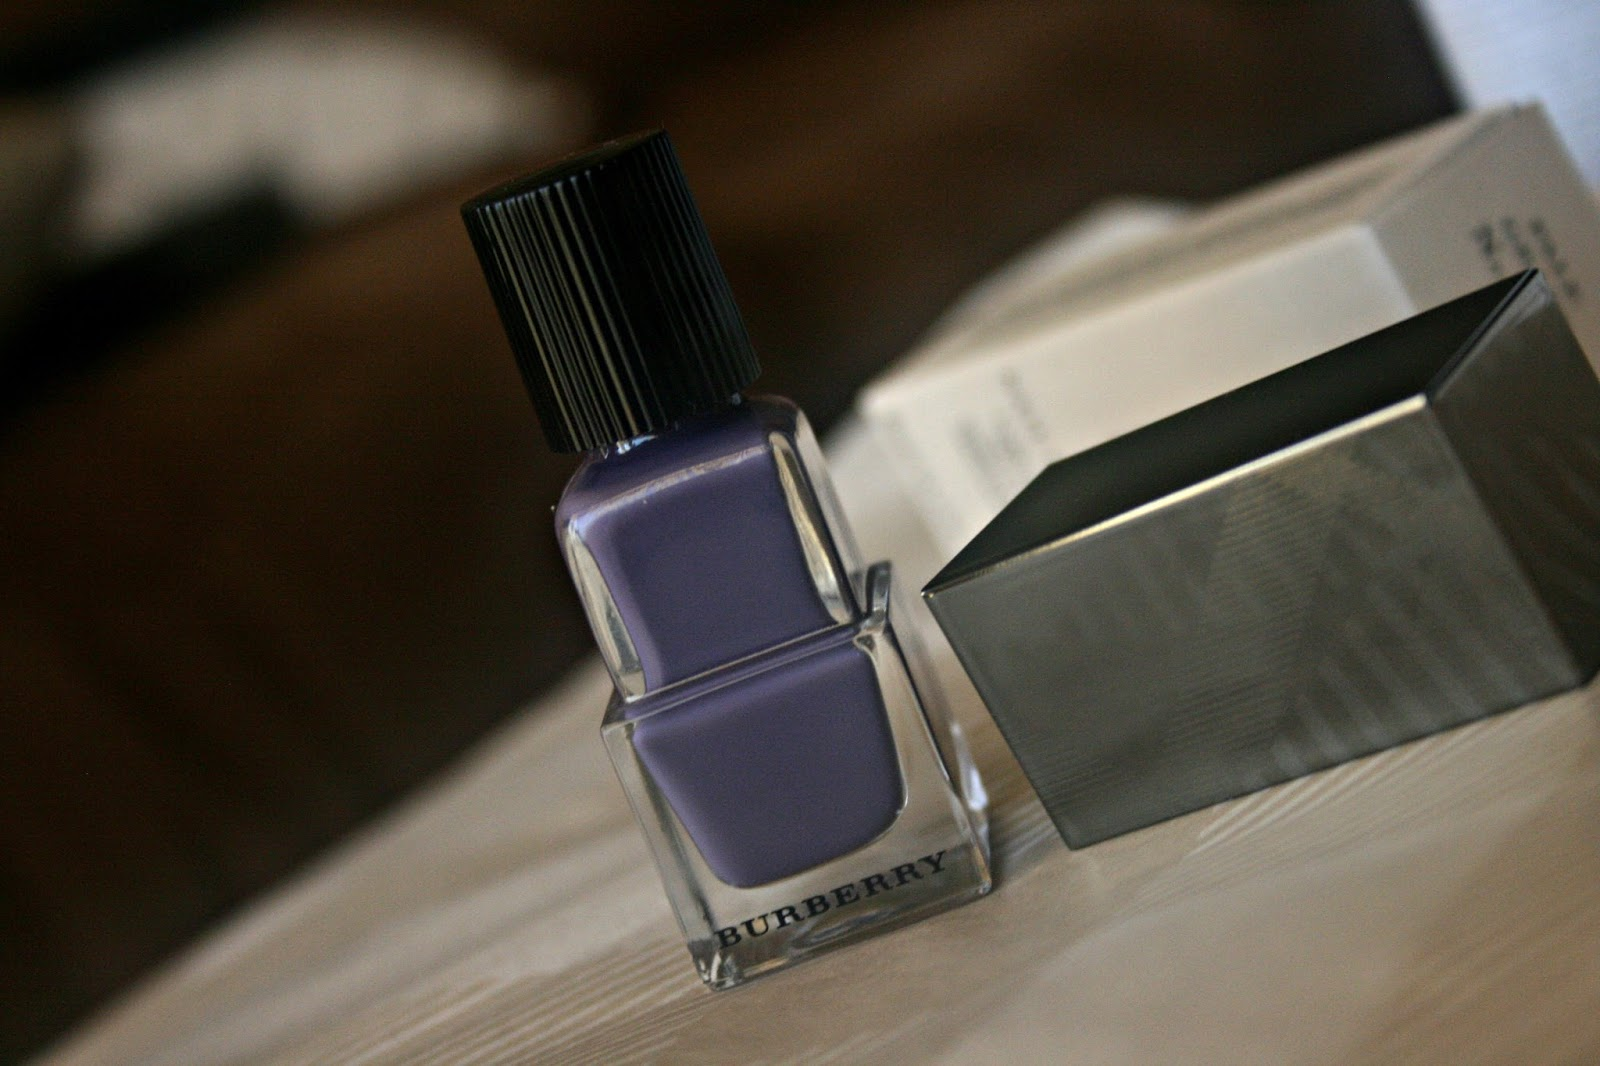 Burberry Beauty Nail Polish in Pale Grape No. 410 Review, Photos & Swatches